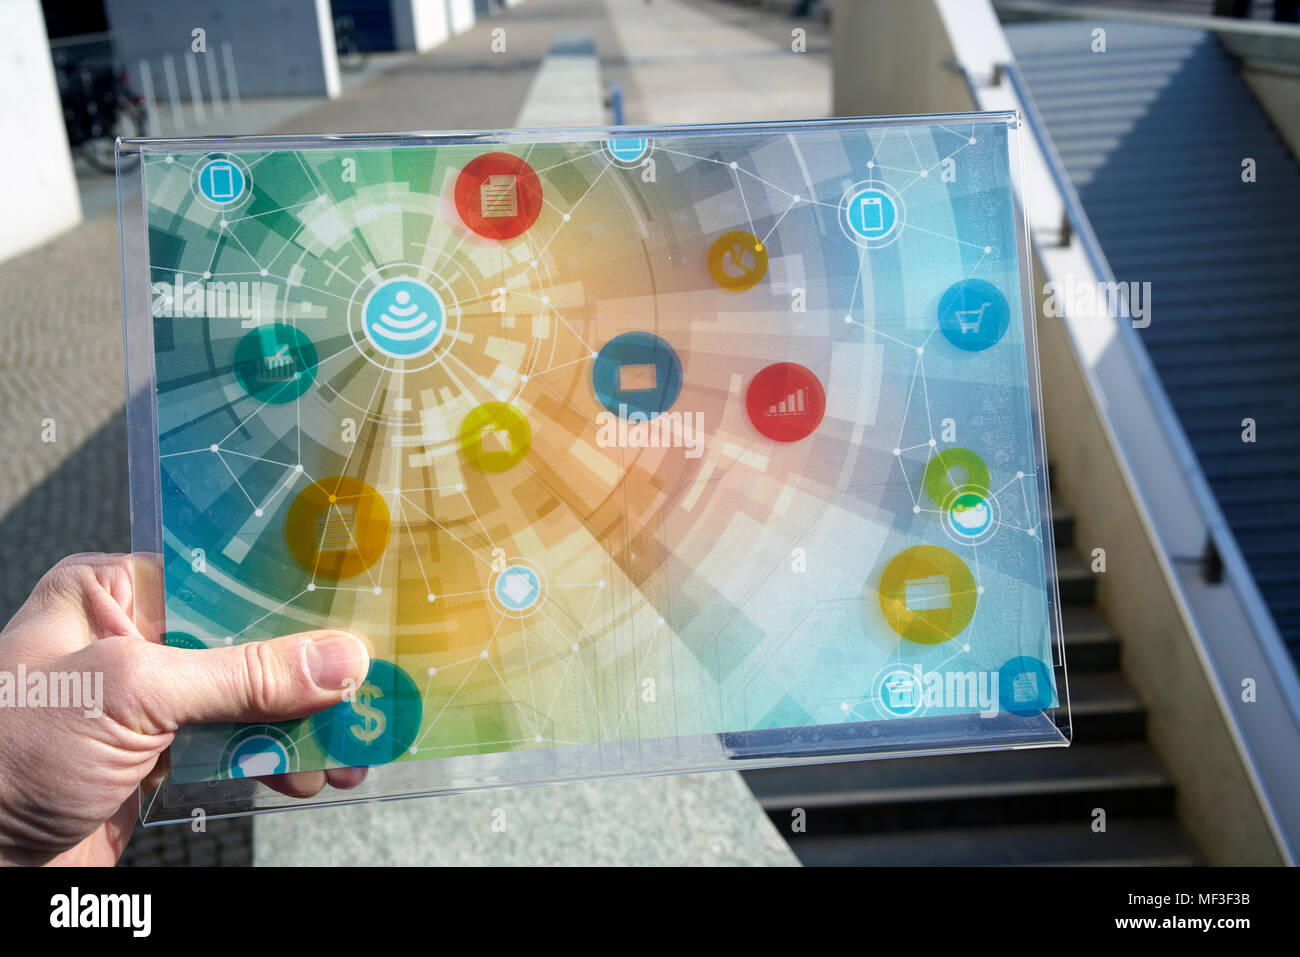 Hand holding futuristic device with digital icons - Stock Image